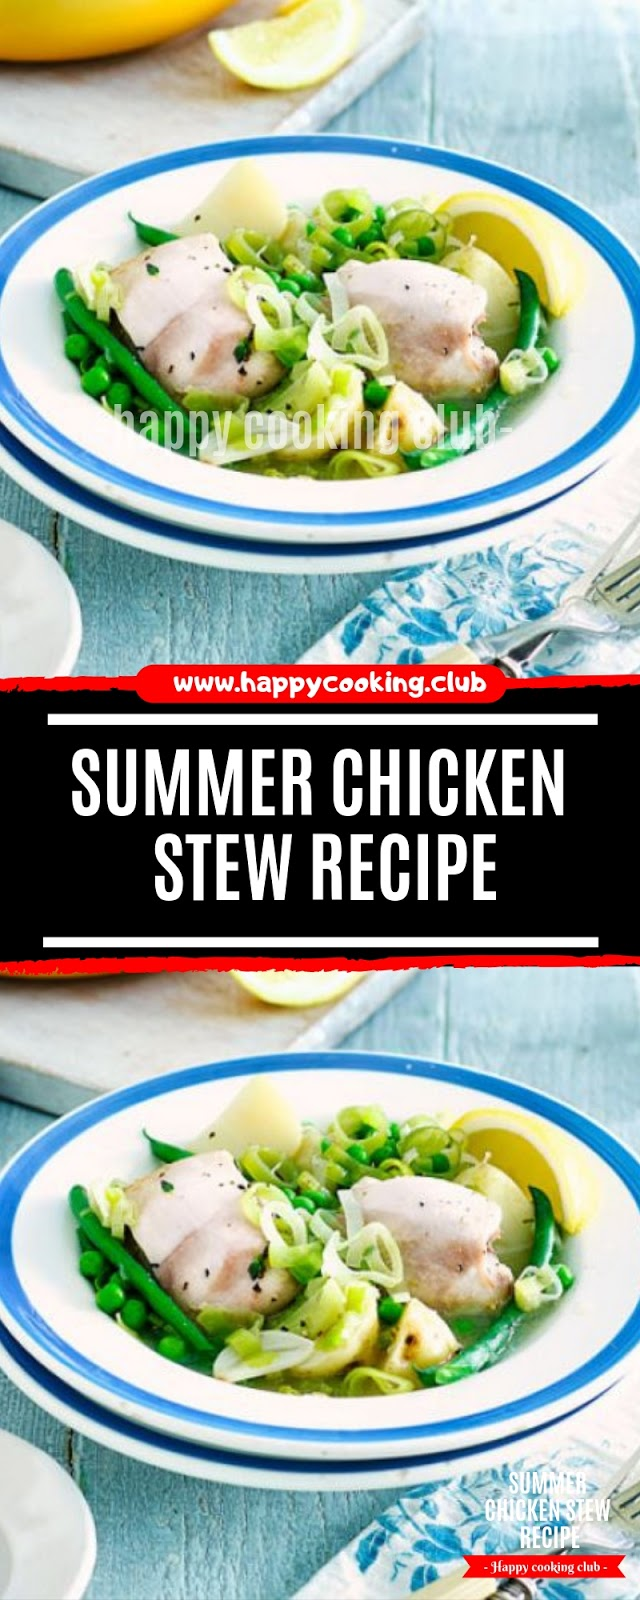 Summer chicken stew Recipe